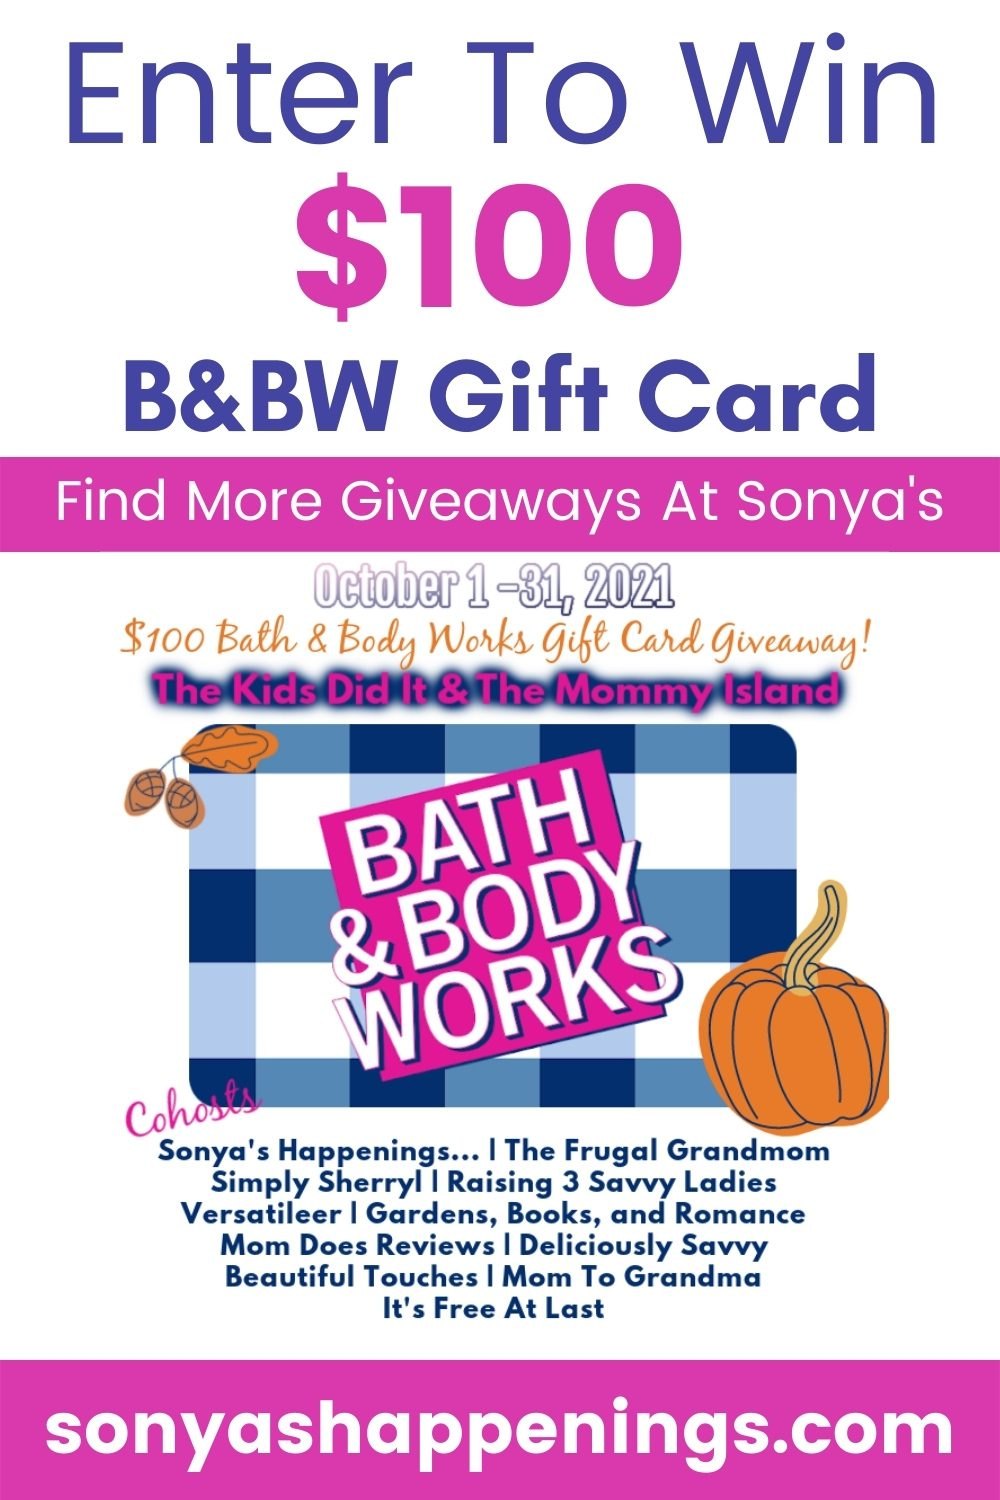 Enter To Win A $100 Bath & Body Works Gift Card ~ Giveaway Ends 10-31